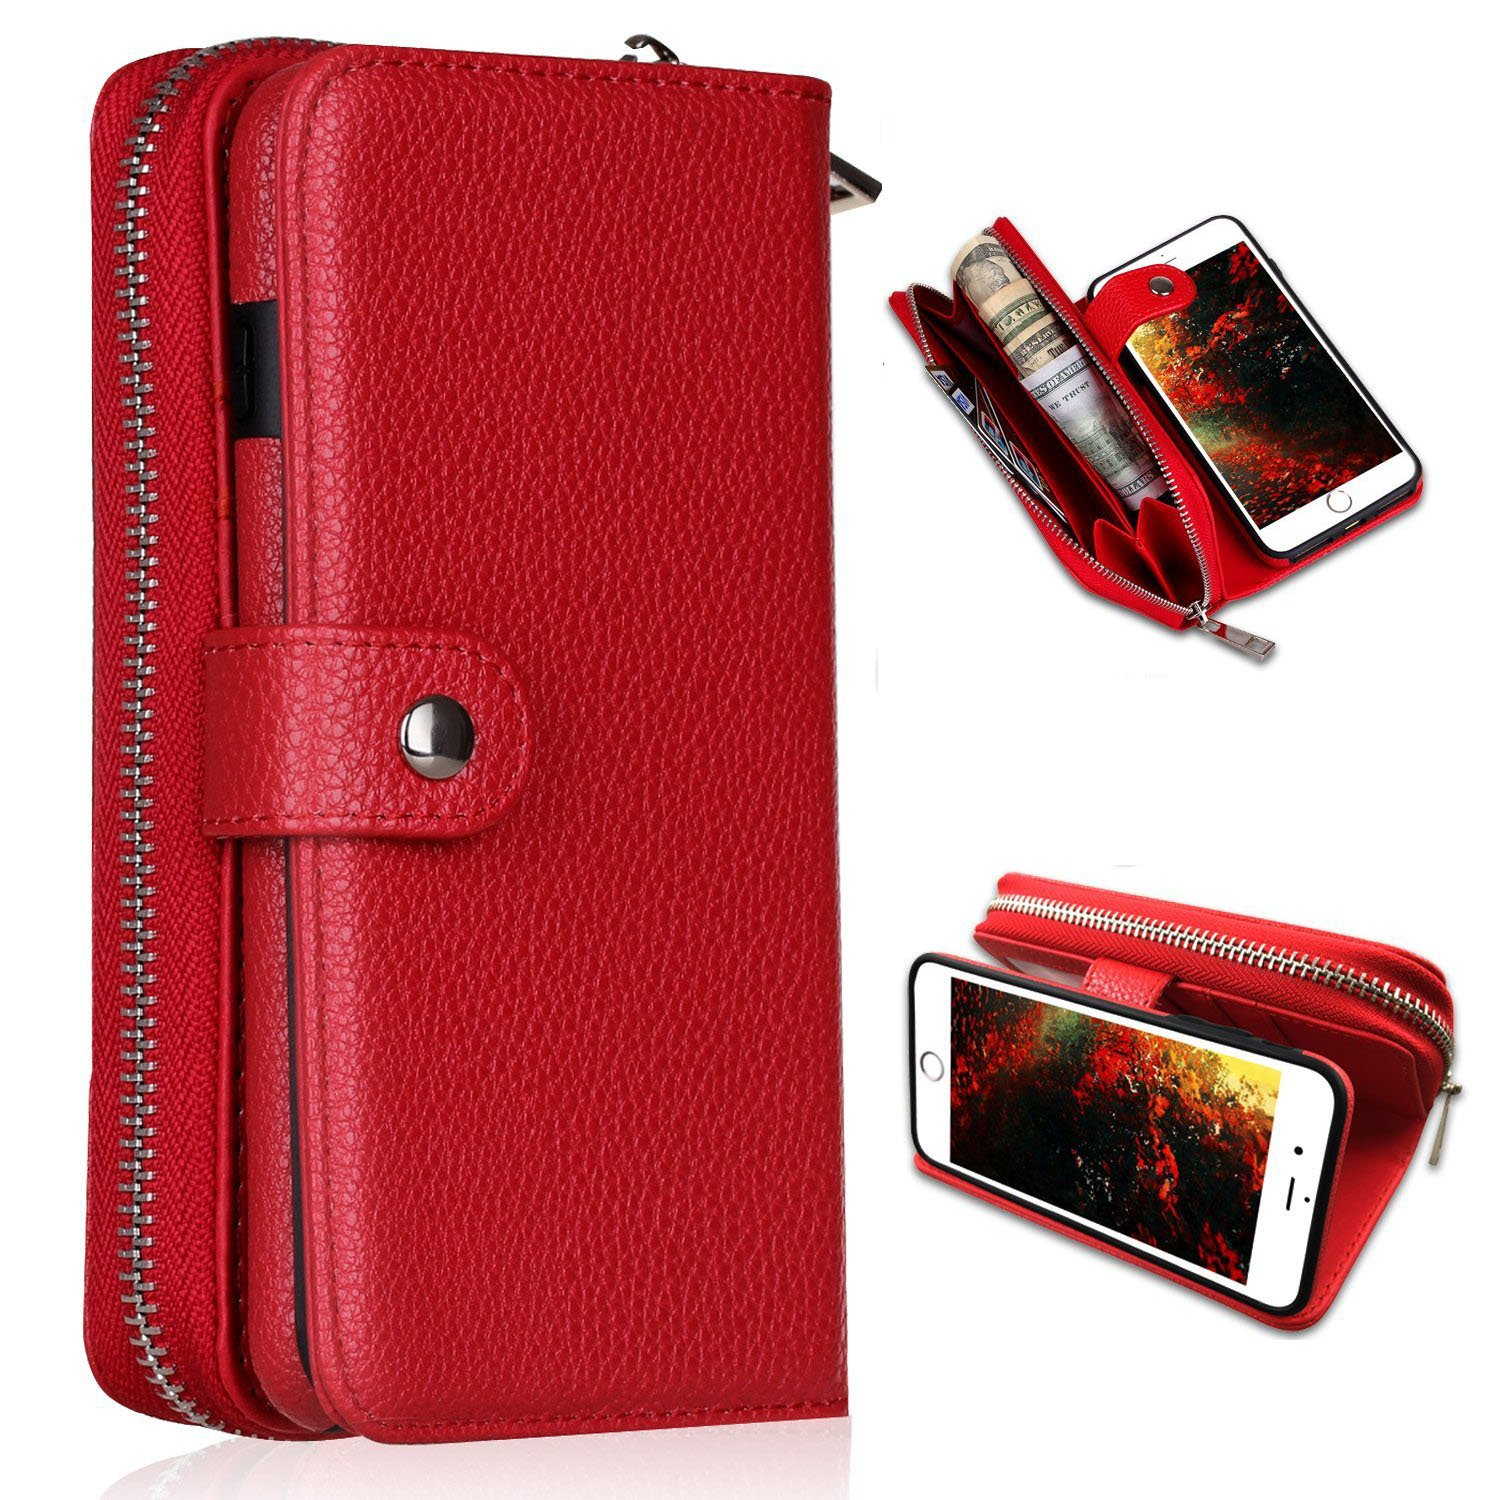 iPhone 6 Wallet Case,iPhone 6s Wallet Case,YSJT Magnets Detachable Women Zipper Cover Pu Leather Card Slots Card Holder Wallet Carrying Case for iPhone 6/6s 4.7'' (Red)